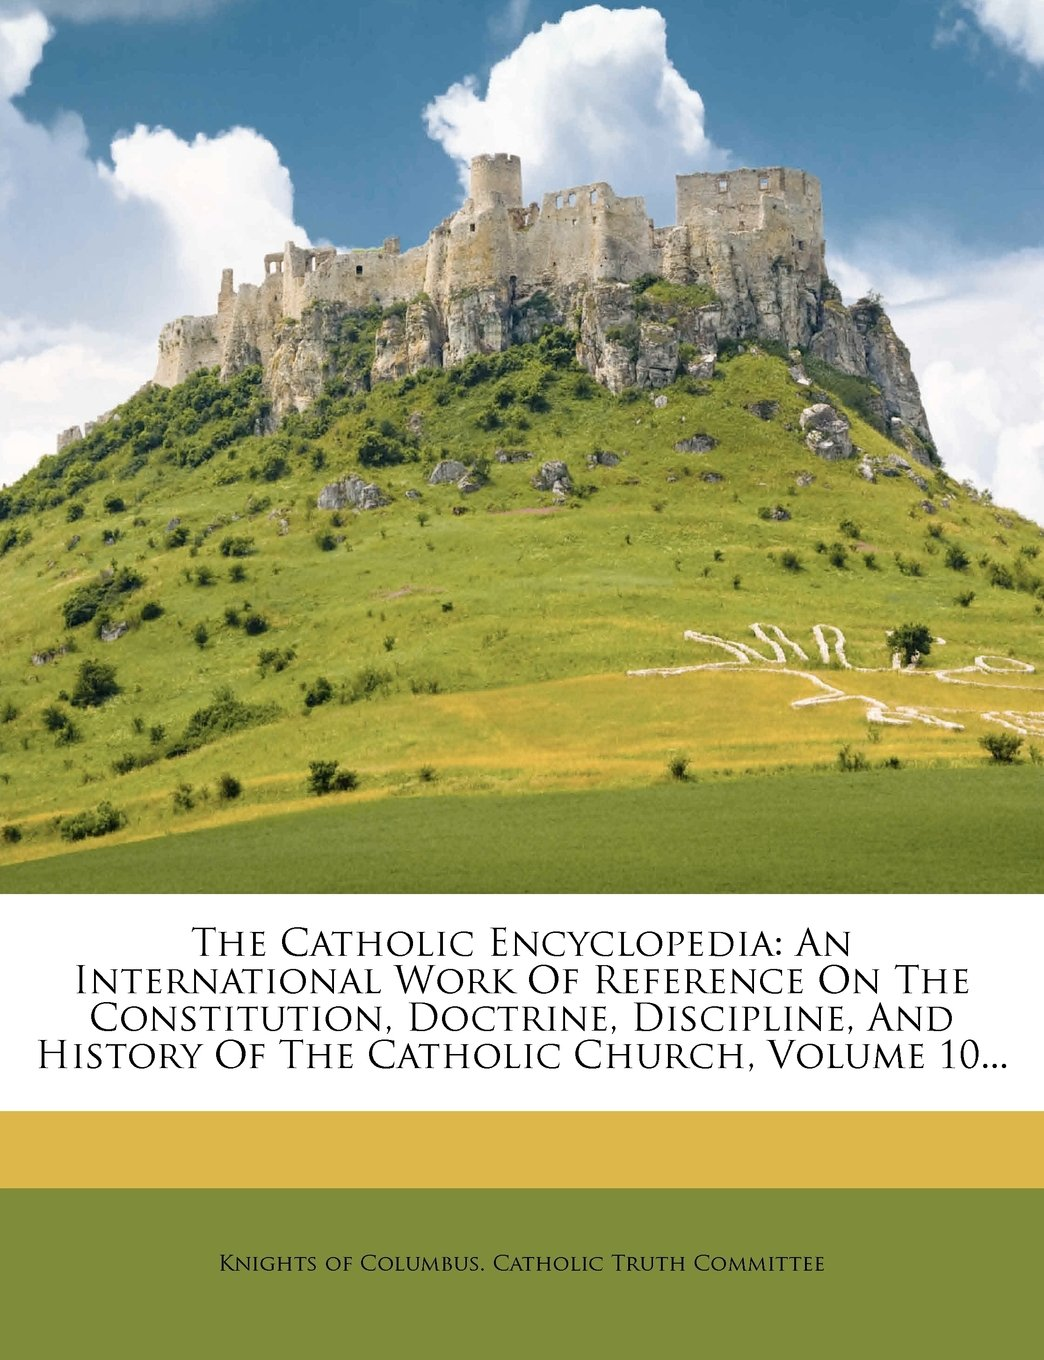 The Catholic Encyclopedia: An International Work Of Reference On The Constitution, Doctrine, Discipline, And History Of The Catholic Church, Volume 10... PDF